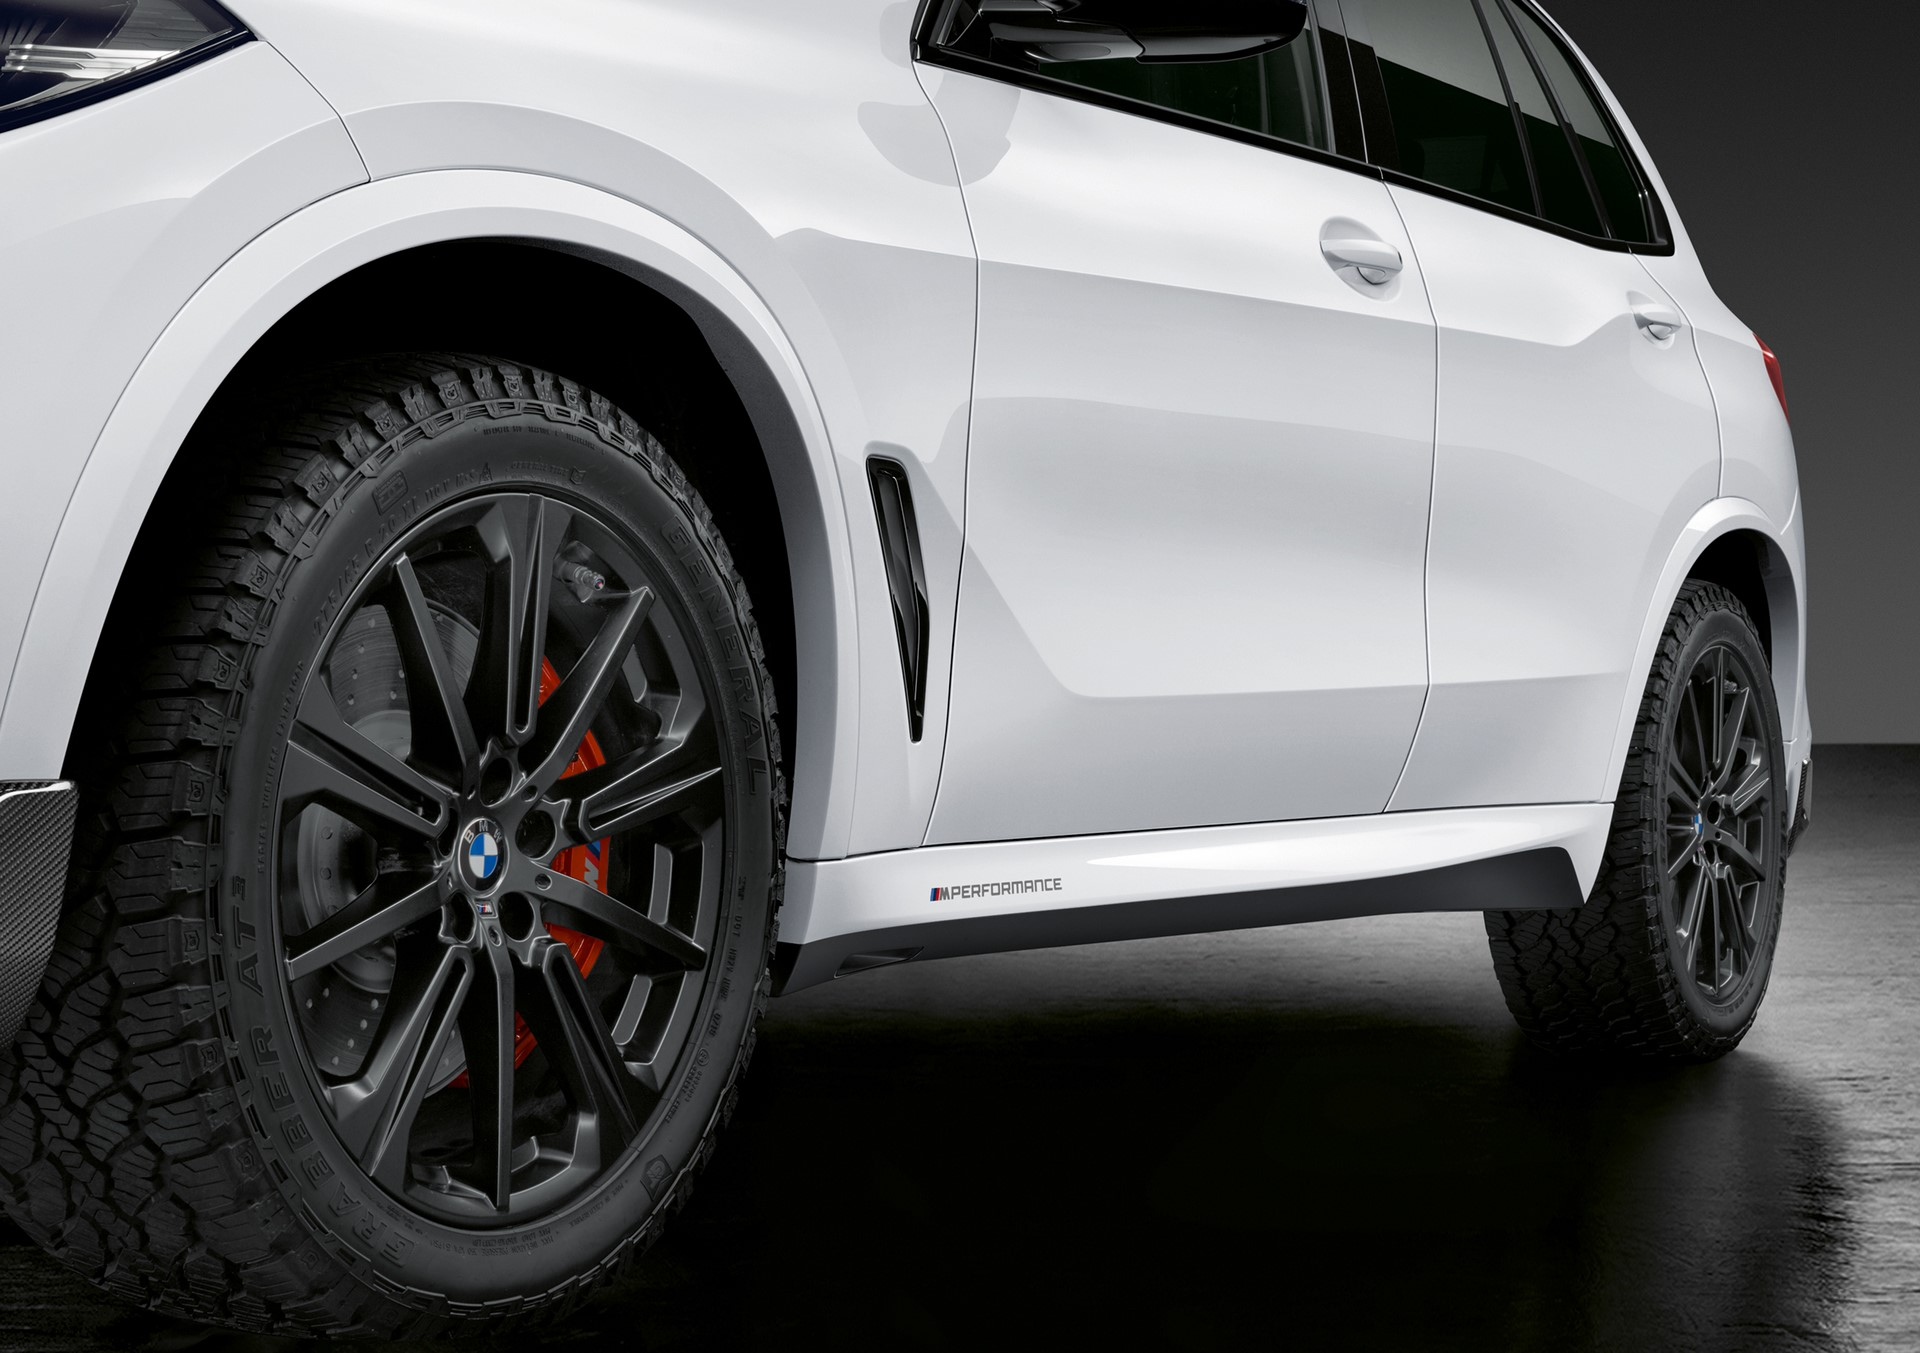 BMW X5 with M Performance parts (6)